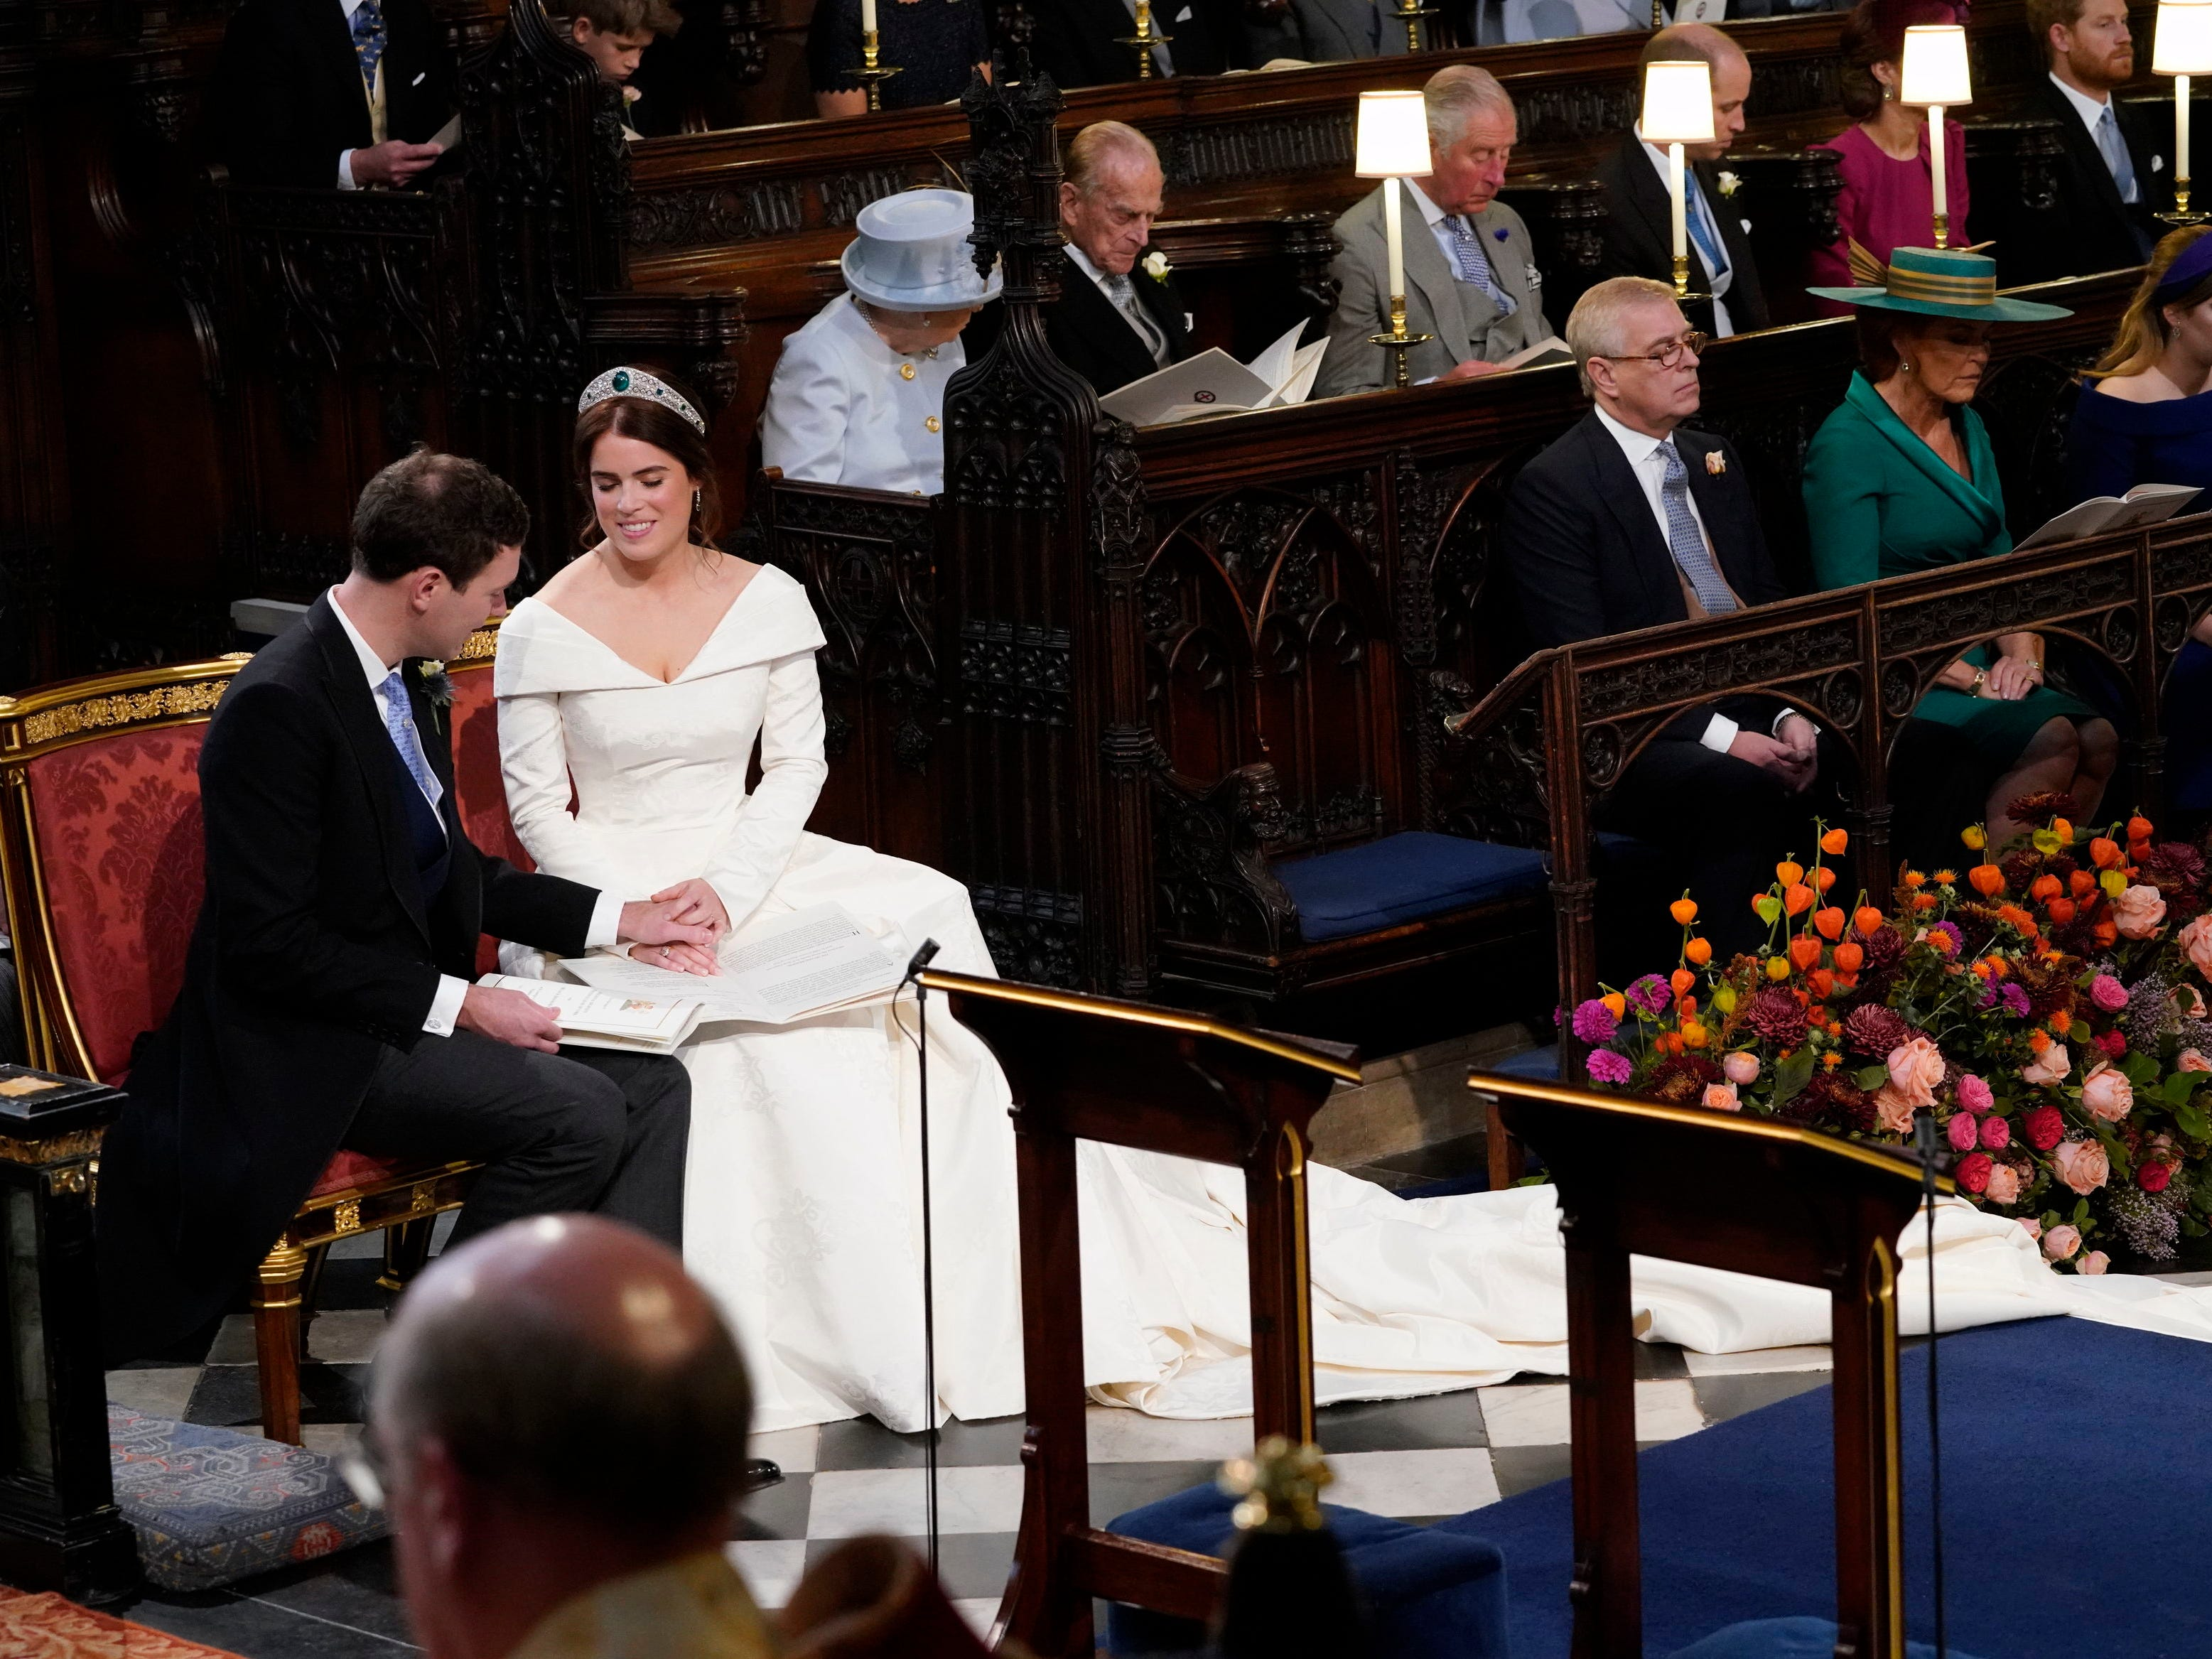 WINDSOR, ENGLAND - OCTOBER 12: Princess Eugenie and Jack Brooksbank during their  wedding ceremony at St George's Chapel in Windsor Castle on October 12, 2018 in Windsor, England. (Photo by Danny Lawson - WPA Pool/Getty Images) ORG XMIT: 775239781 ORIG FILE ID: 1051952282